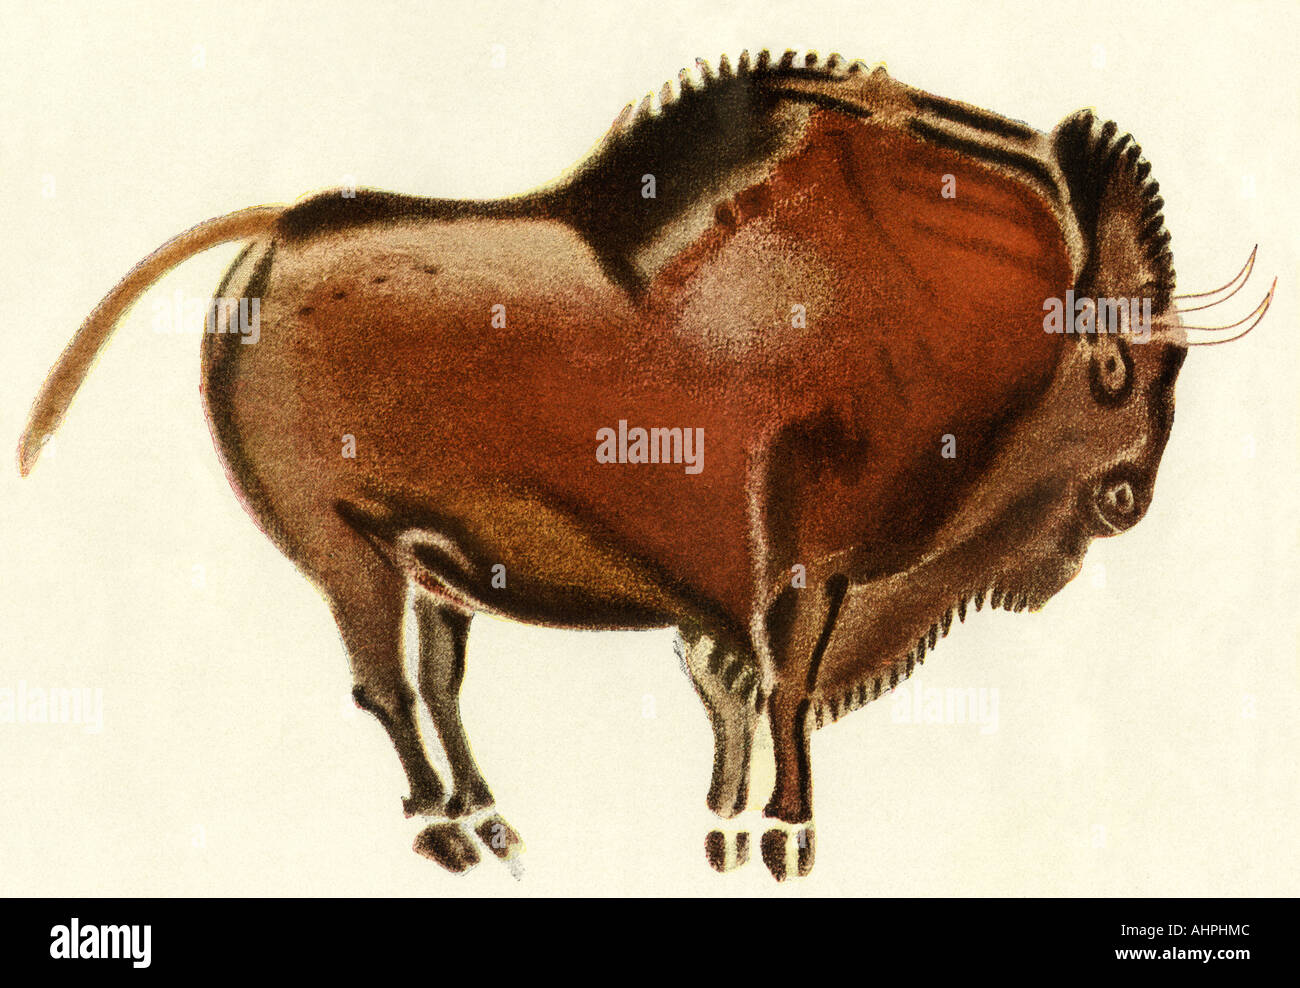 Prehistoric cave painting of a bison Altamira Spain. Color lithograph - Stock Image